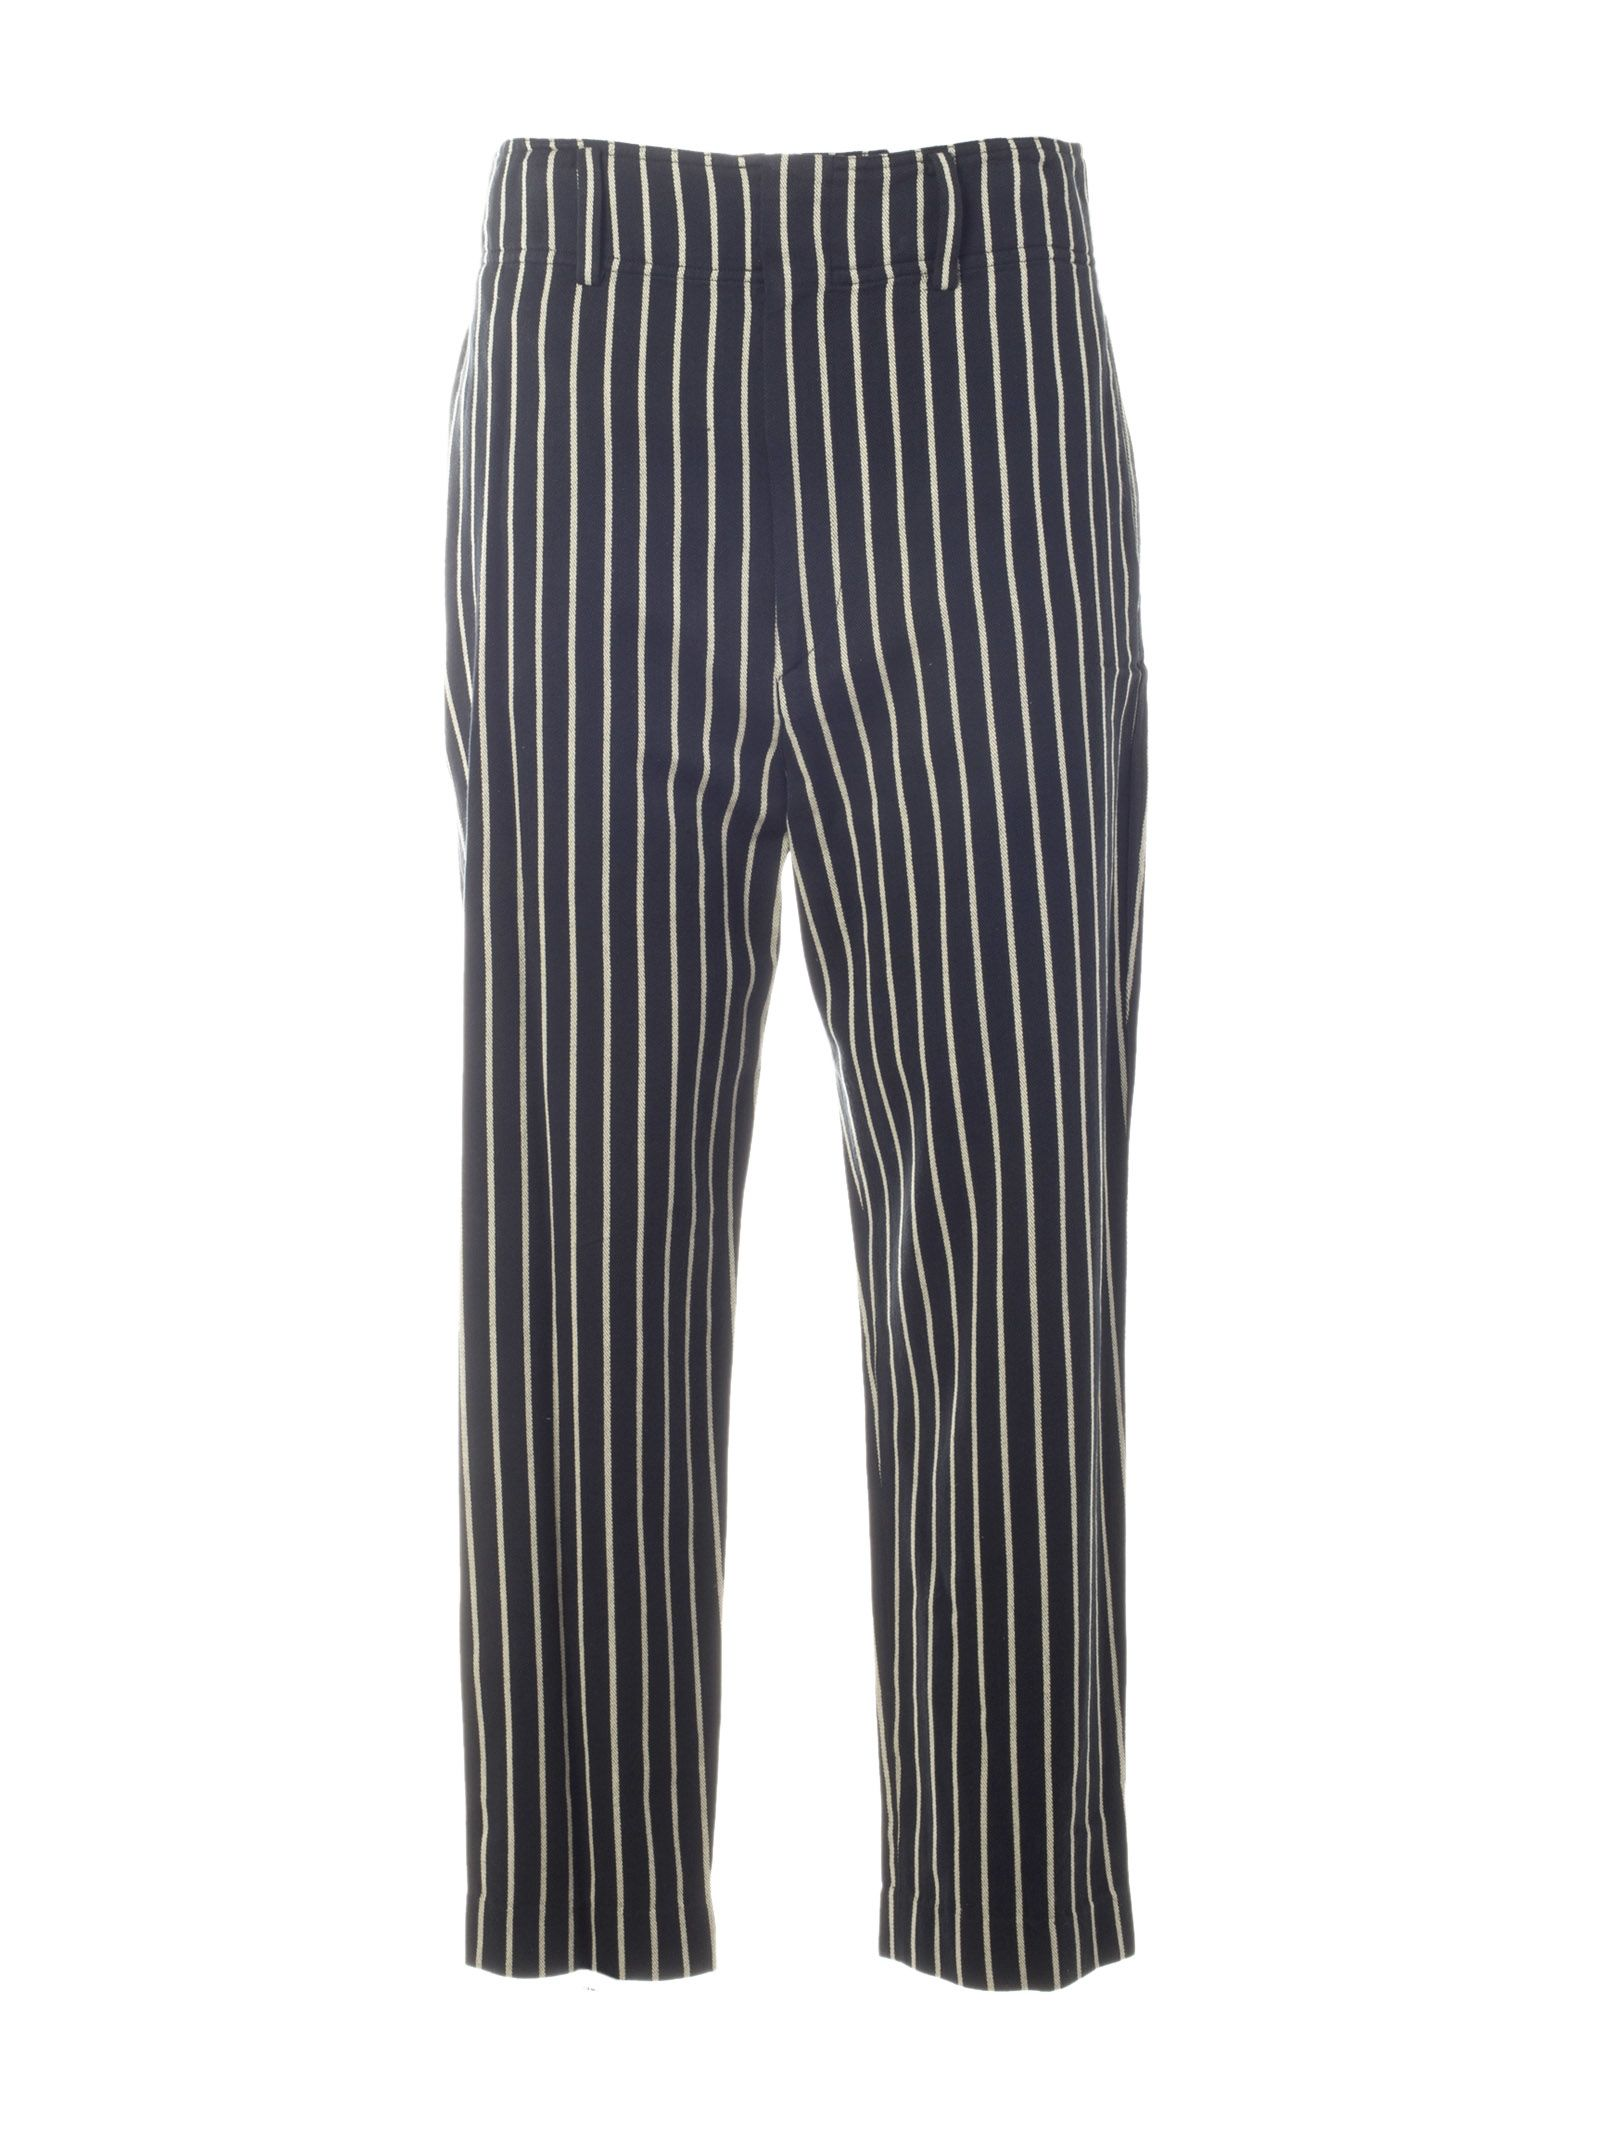 Isabel Marant Striped Trousers